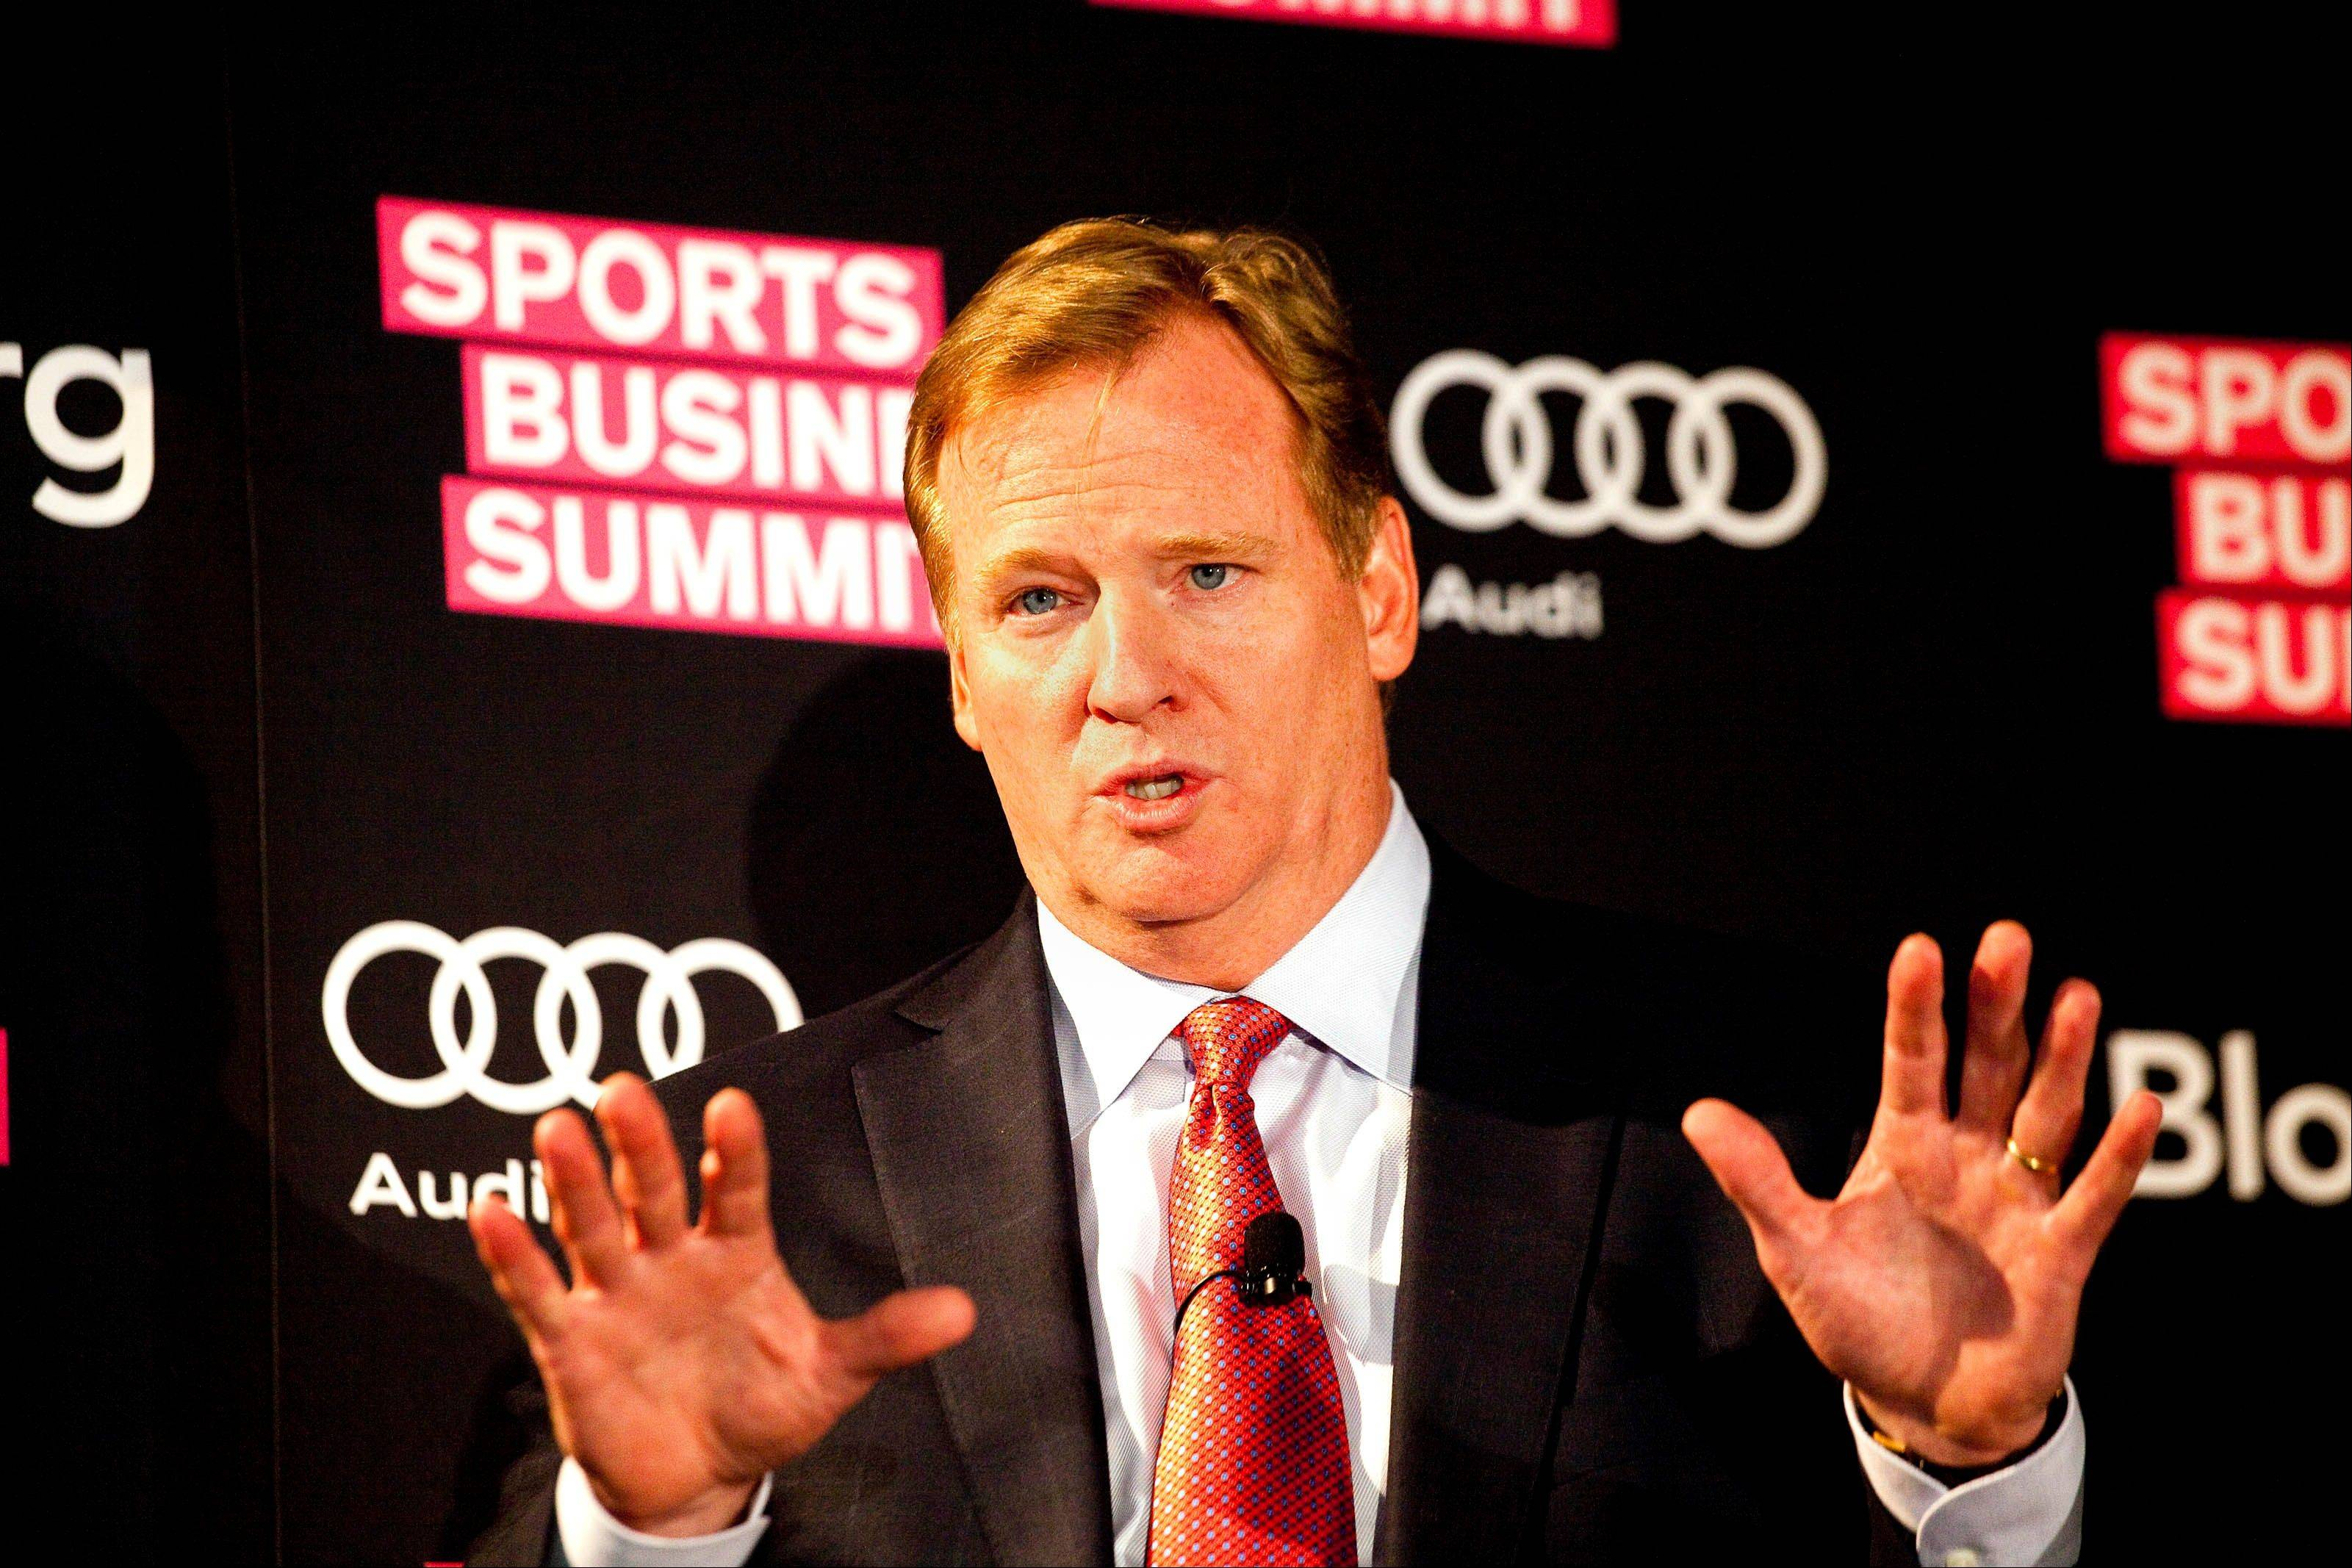 Roger Goodell, commissioner of the National Football League, has two major issues on his plate: reopening the bounty-gate discussions on his rulings, and settling the contract dispute with NFL referees.